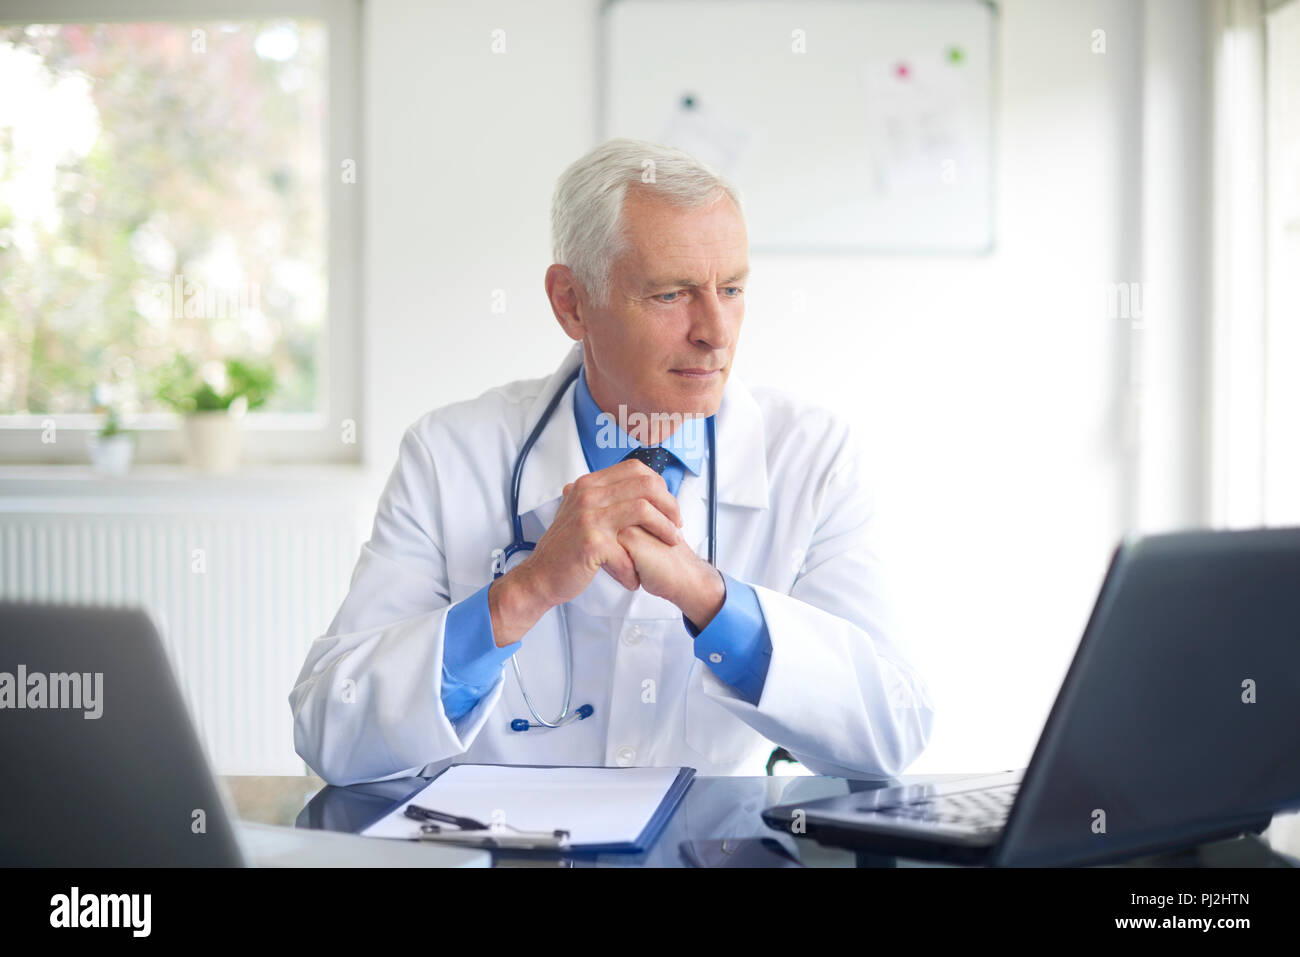 Portrait of senior male doctor working on laptop while sitting in consulting room. - Stock Image